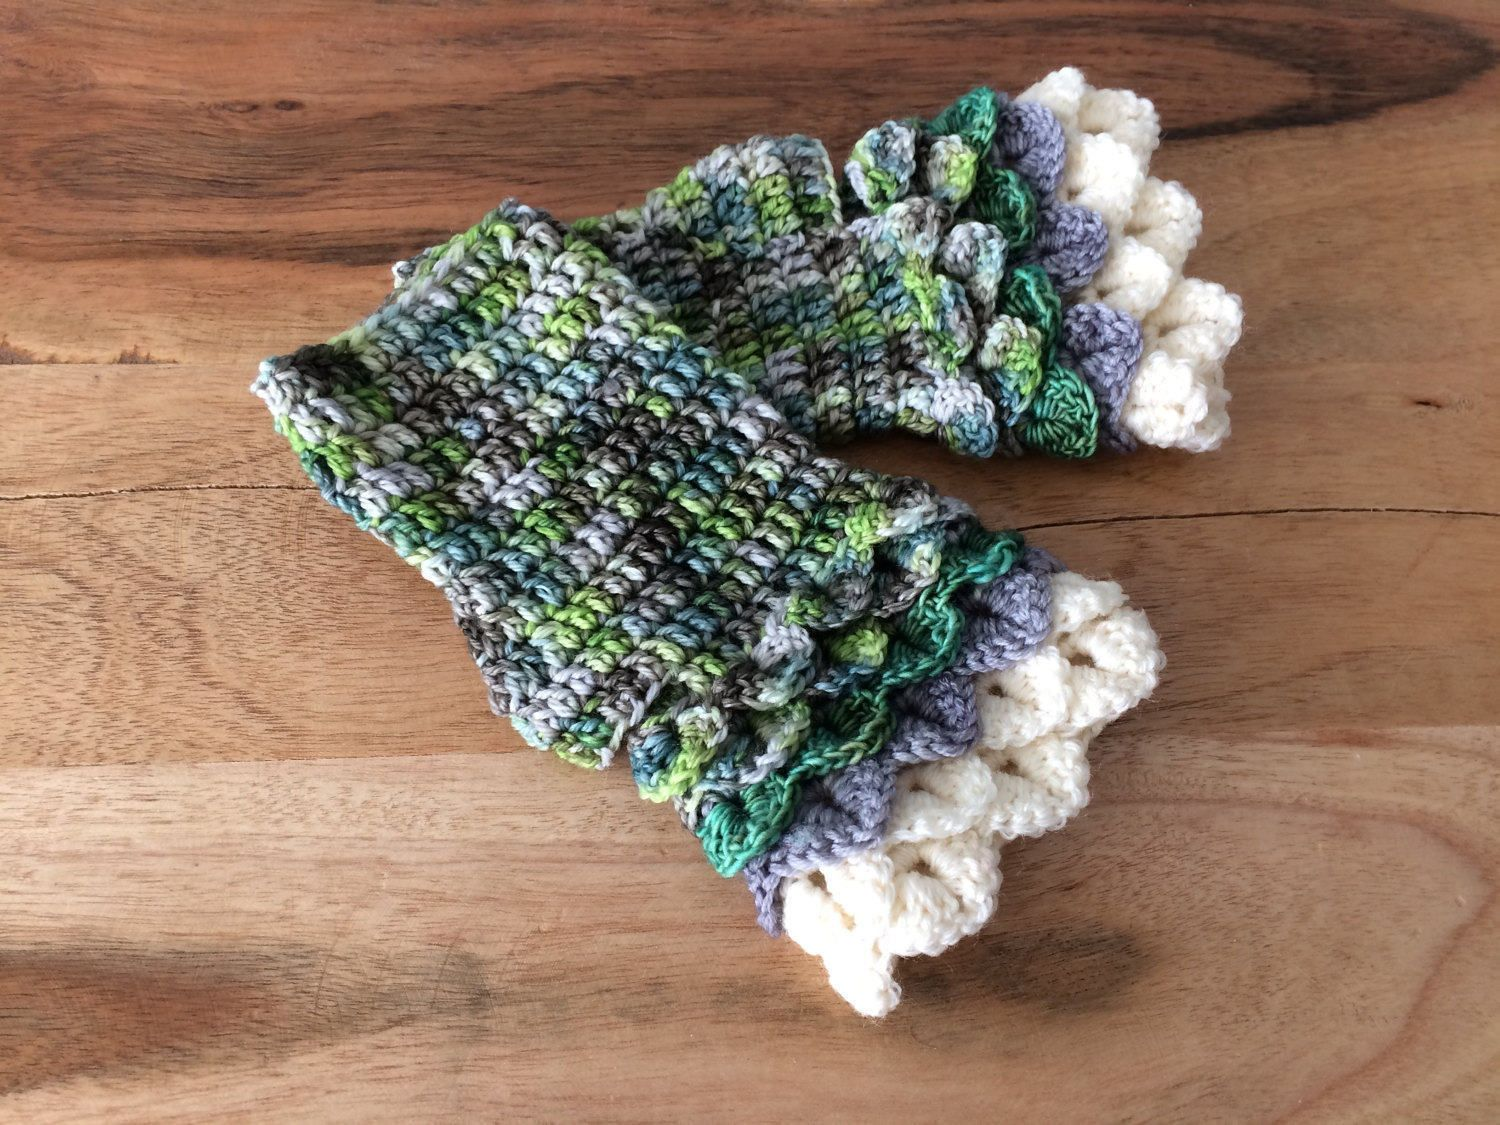 Green Fingerless Mitts - Green Dragon Scale Mitts - Green Shades Fingerless Mitts - Dragon Scale Mitts - Fingerless Mitts - Gifts for Her